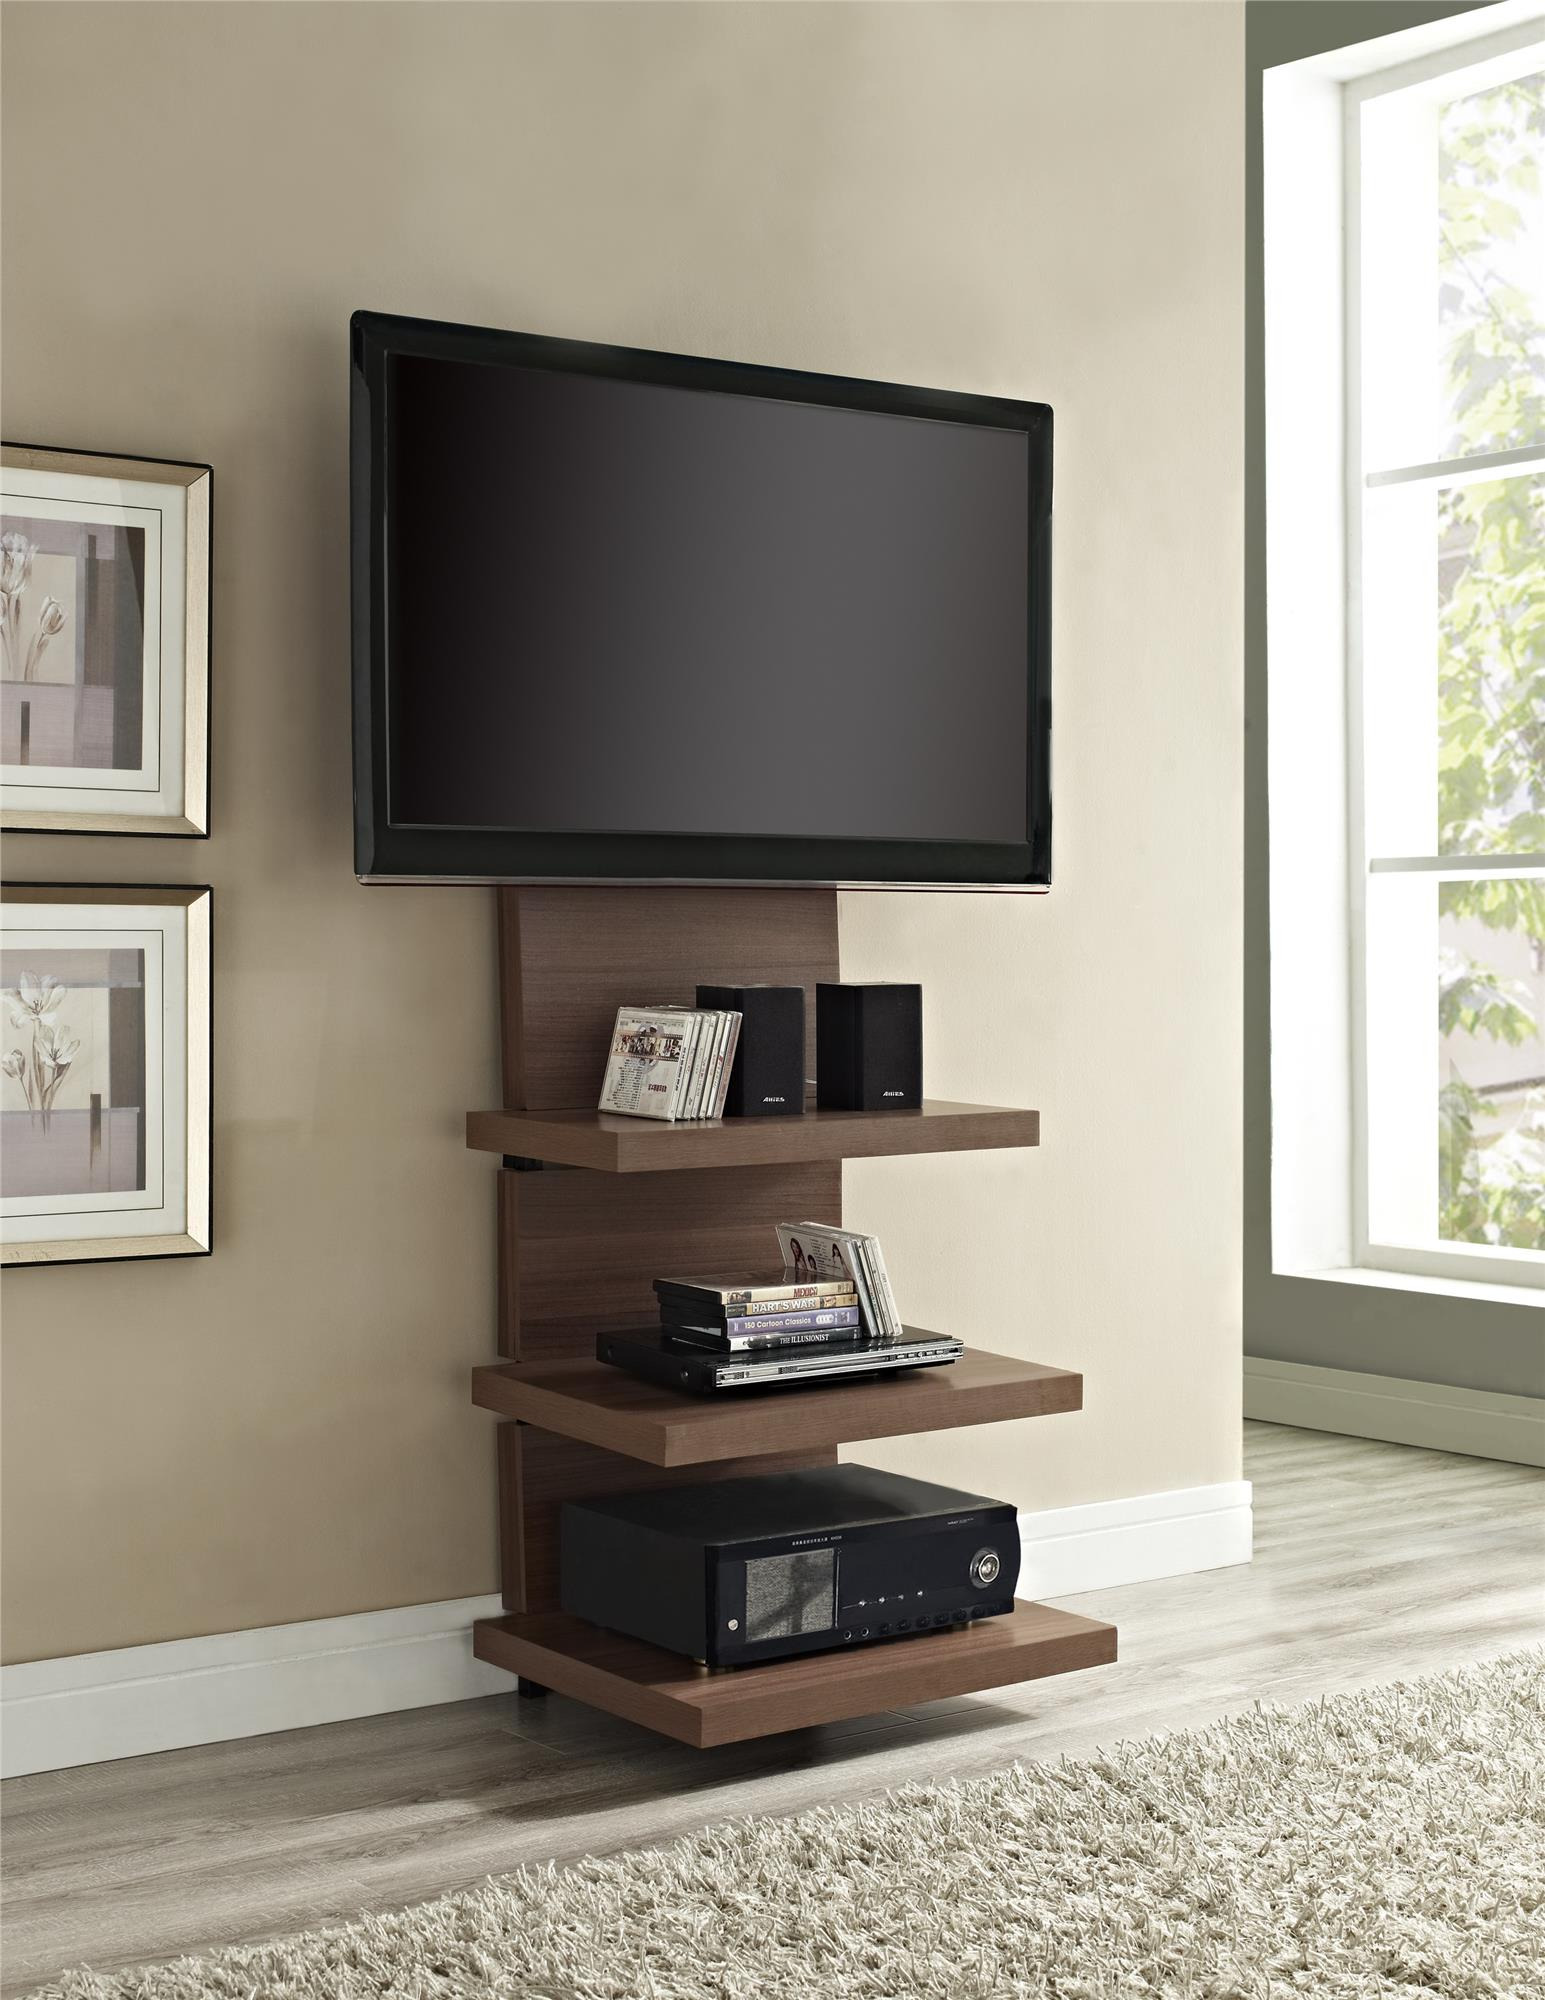 chic wall mount flat tv stands tall wood wall mounted tv stand with shelves and mount wfhufuk